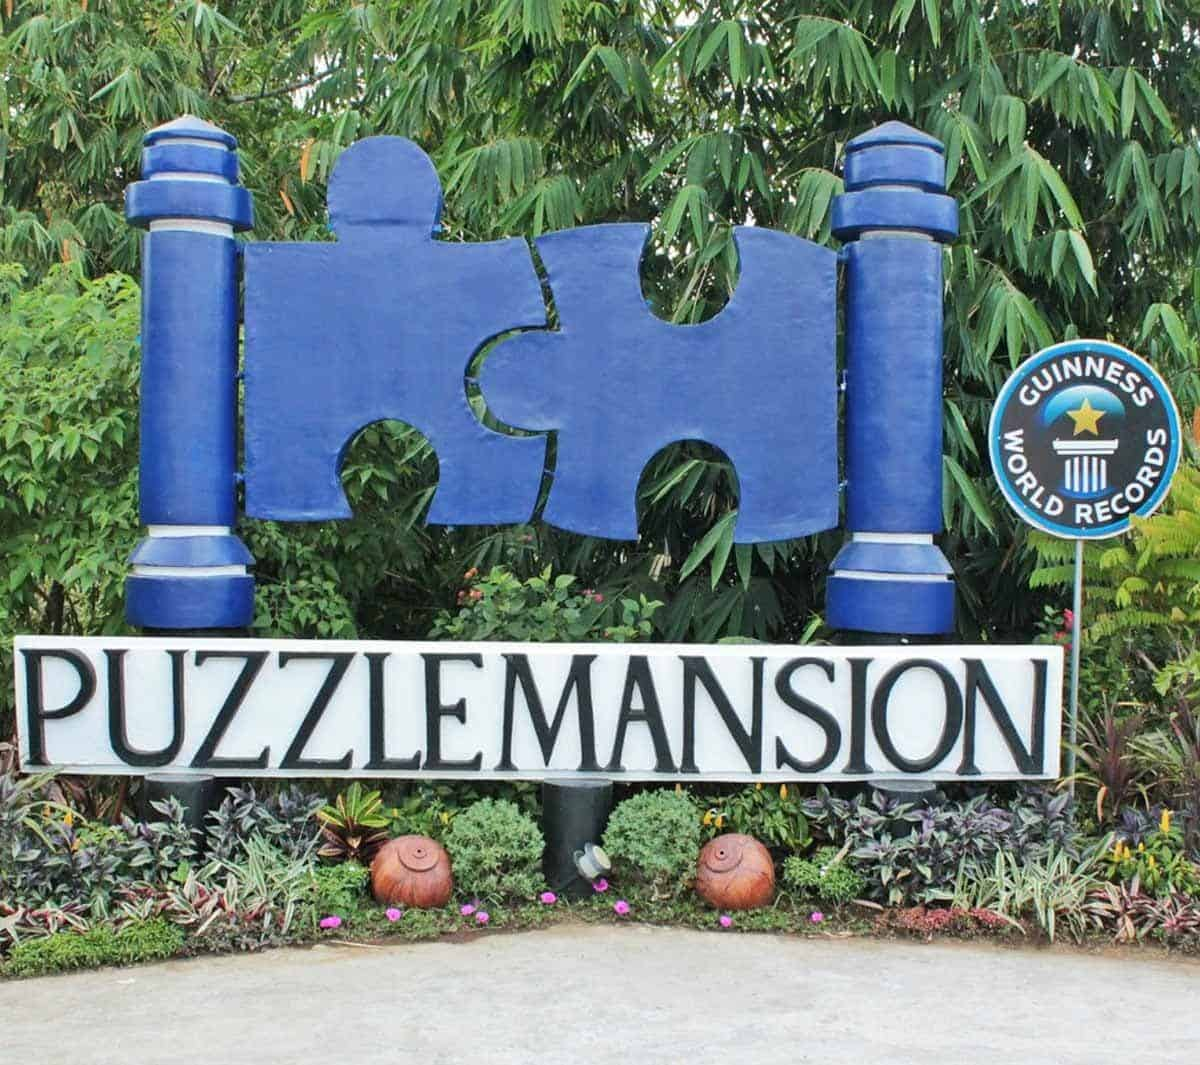 top tourist attractions in tagaytay the philippines puzzle mansion